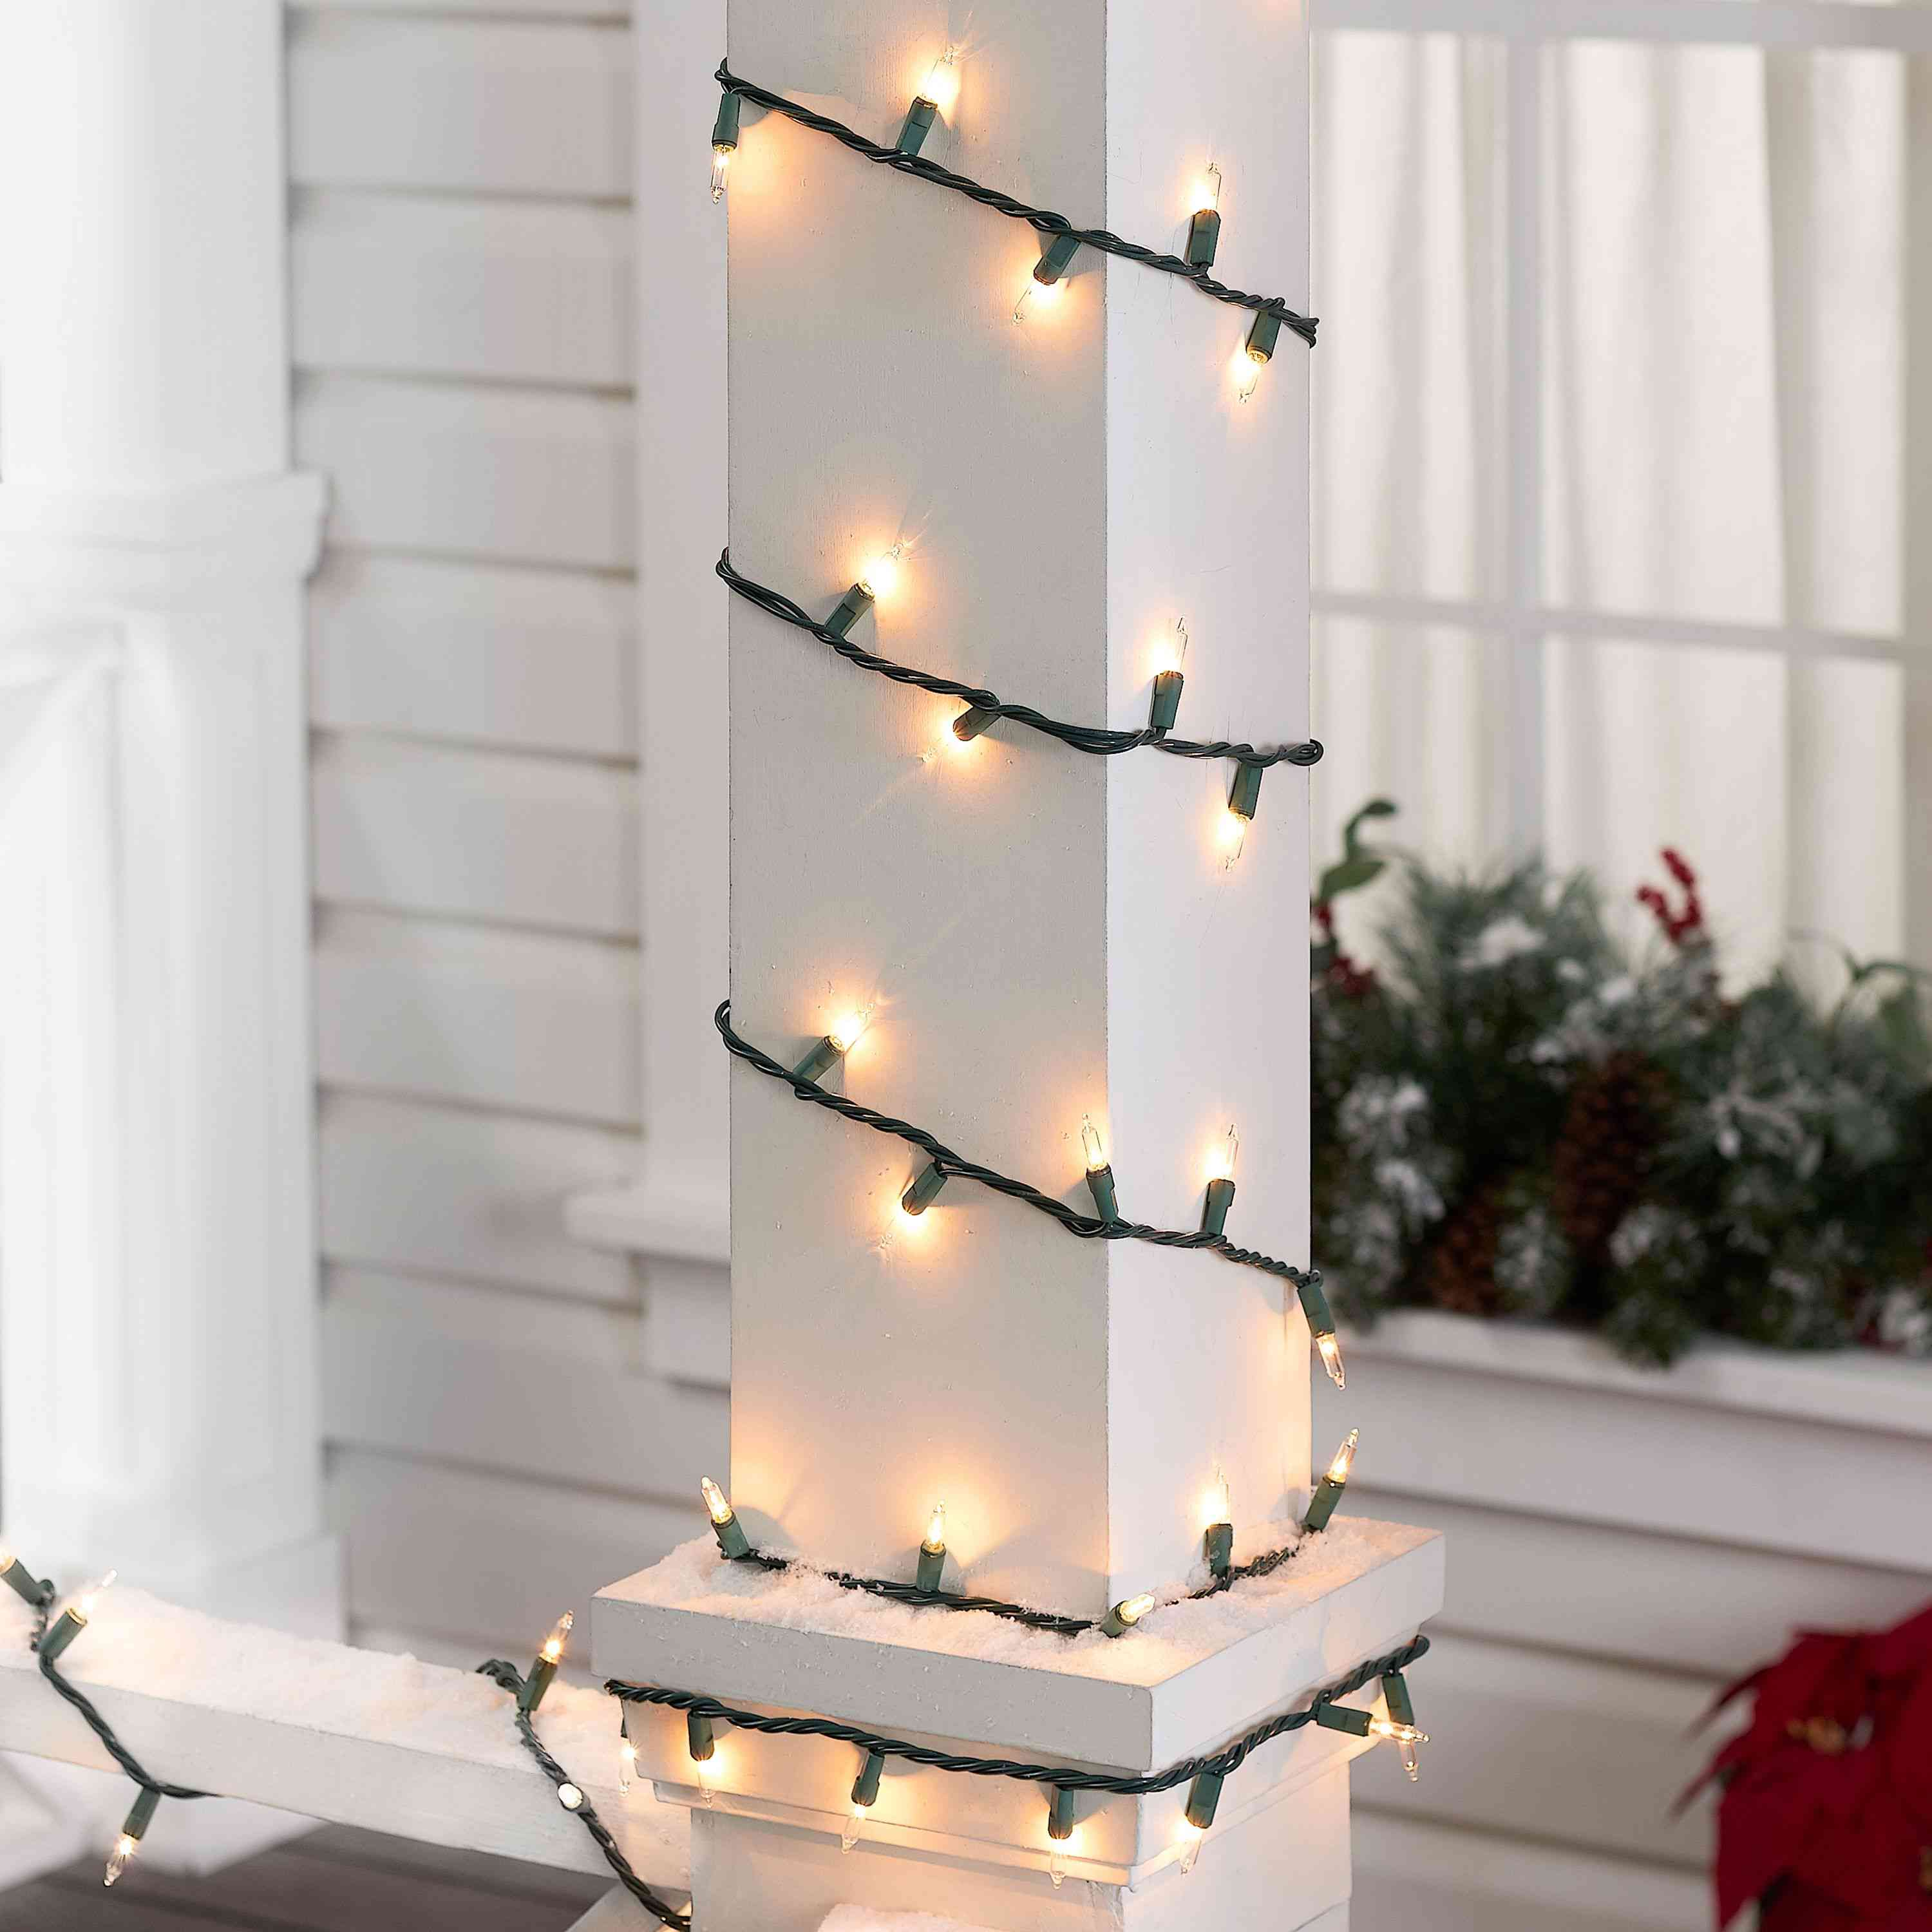 Best Led C9 Christmas Lights 2021 The 10 Best Outdoor Christmas Lights Of 2021